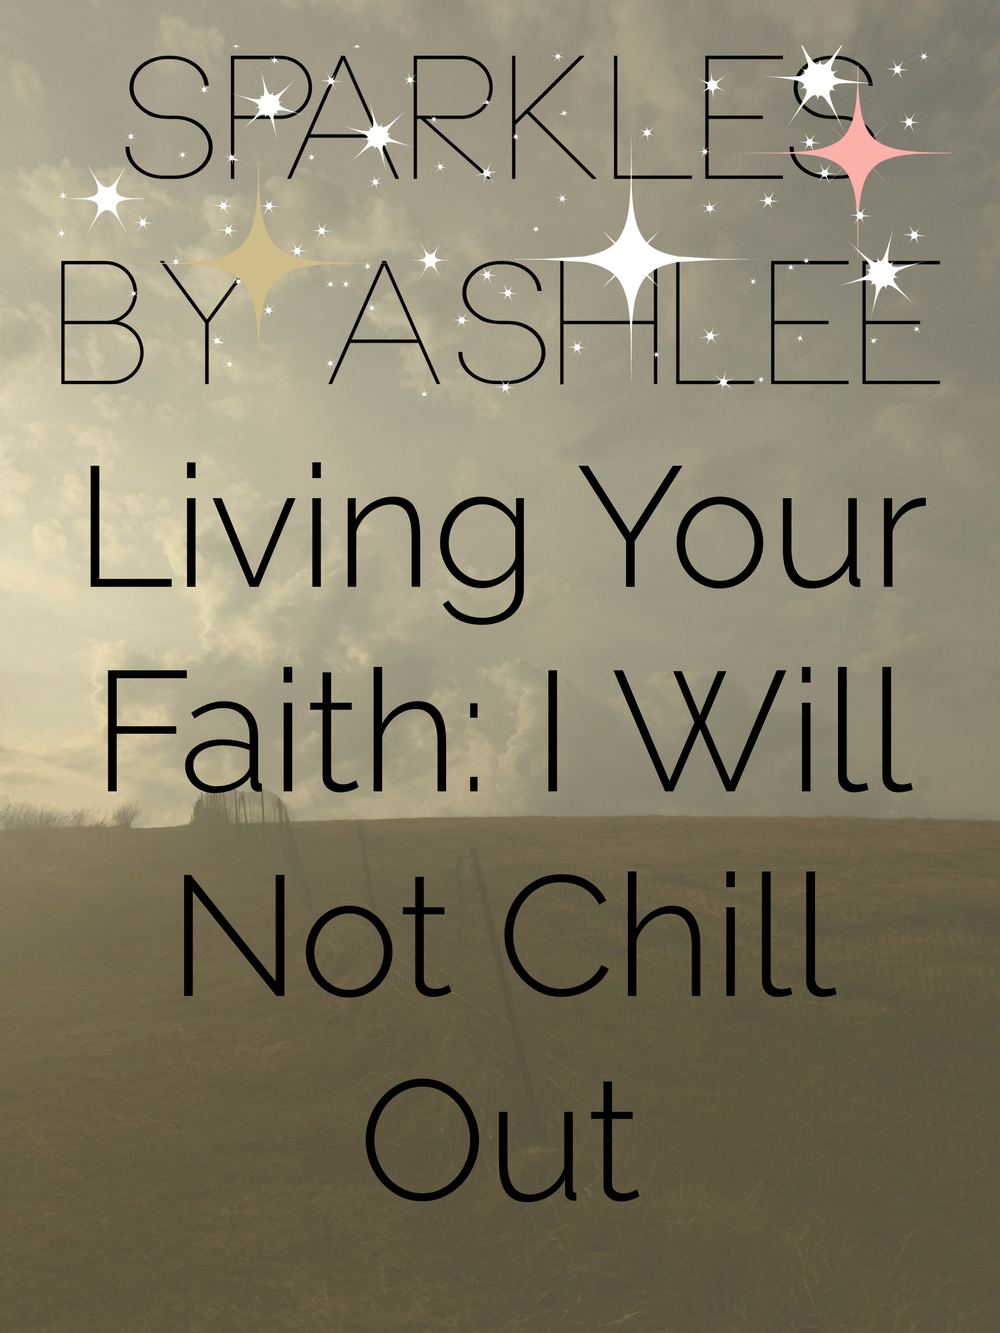 Living-Your-Faith-I-Will-Not-Chill-Out-Sparkles-by-Ashlee.jpg